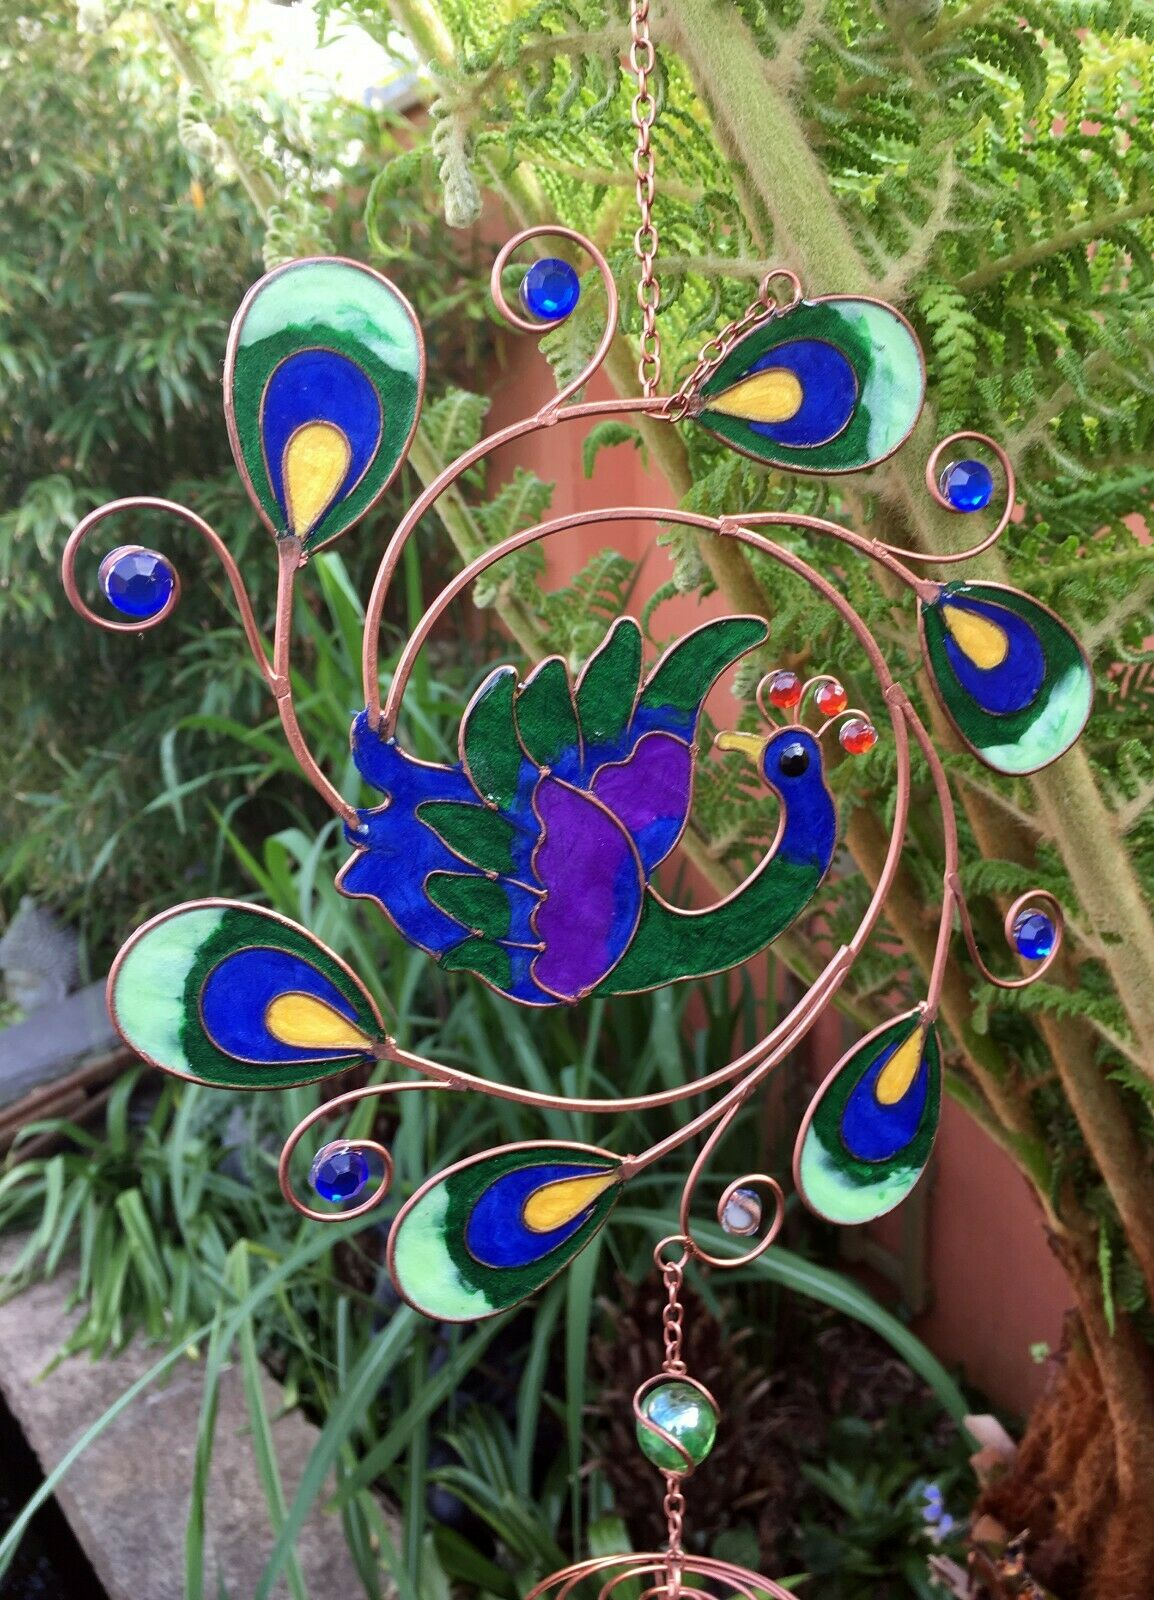 Large Stained Glass Green Peacock Windchime - Radiant Sun Catcher